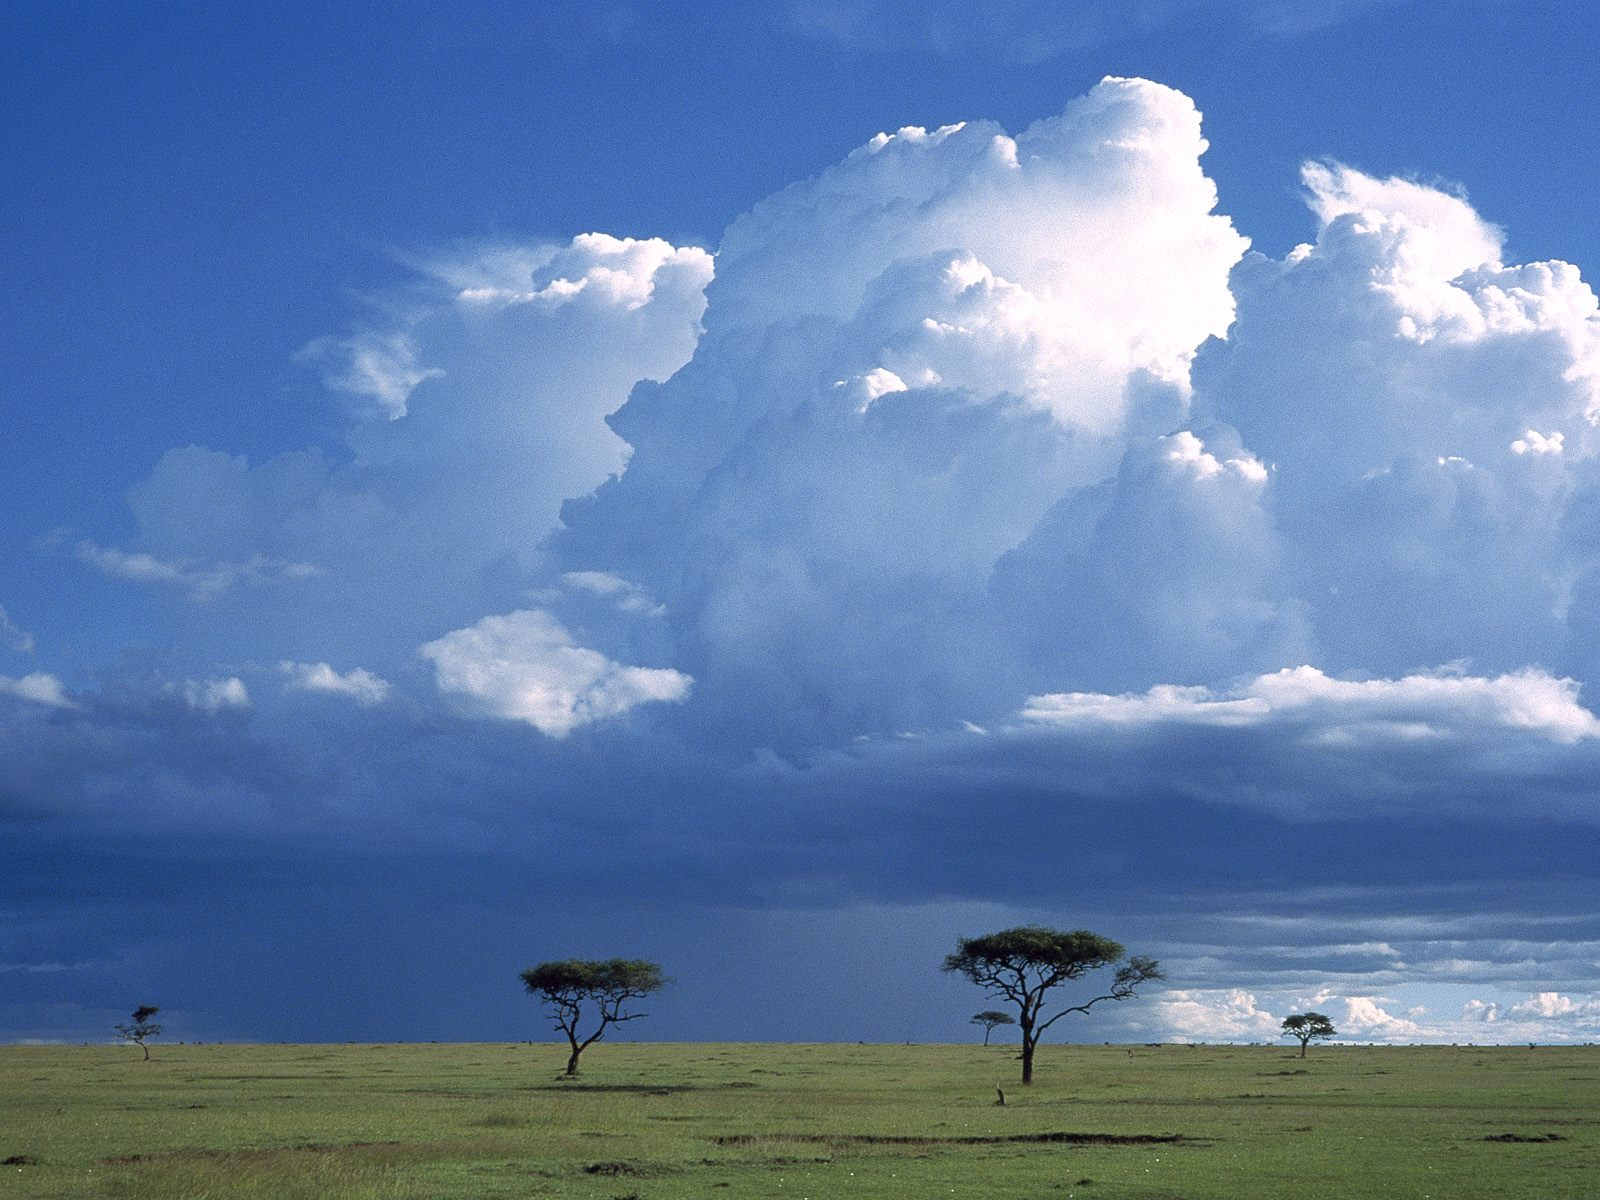 Kenya, Africa, Storm Over the Savannah